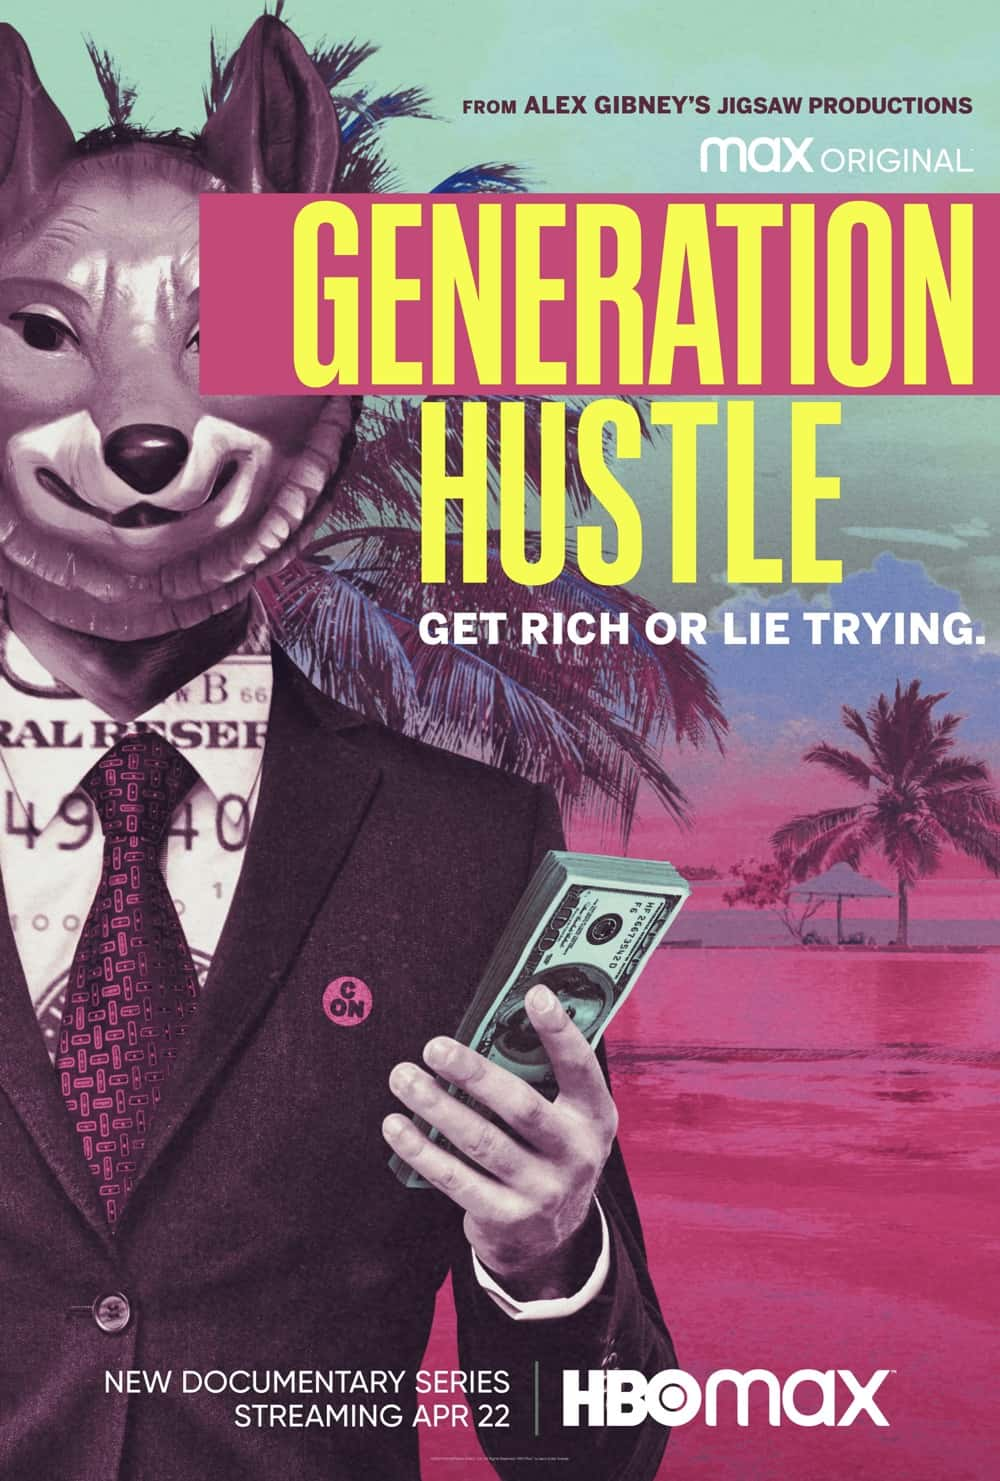 Generation Hustle HBO Max Poster